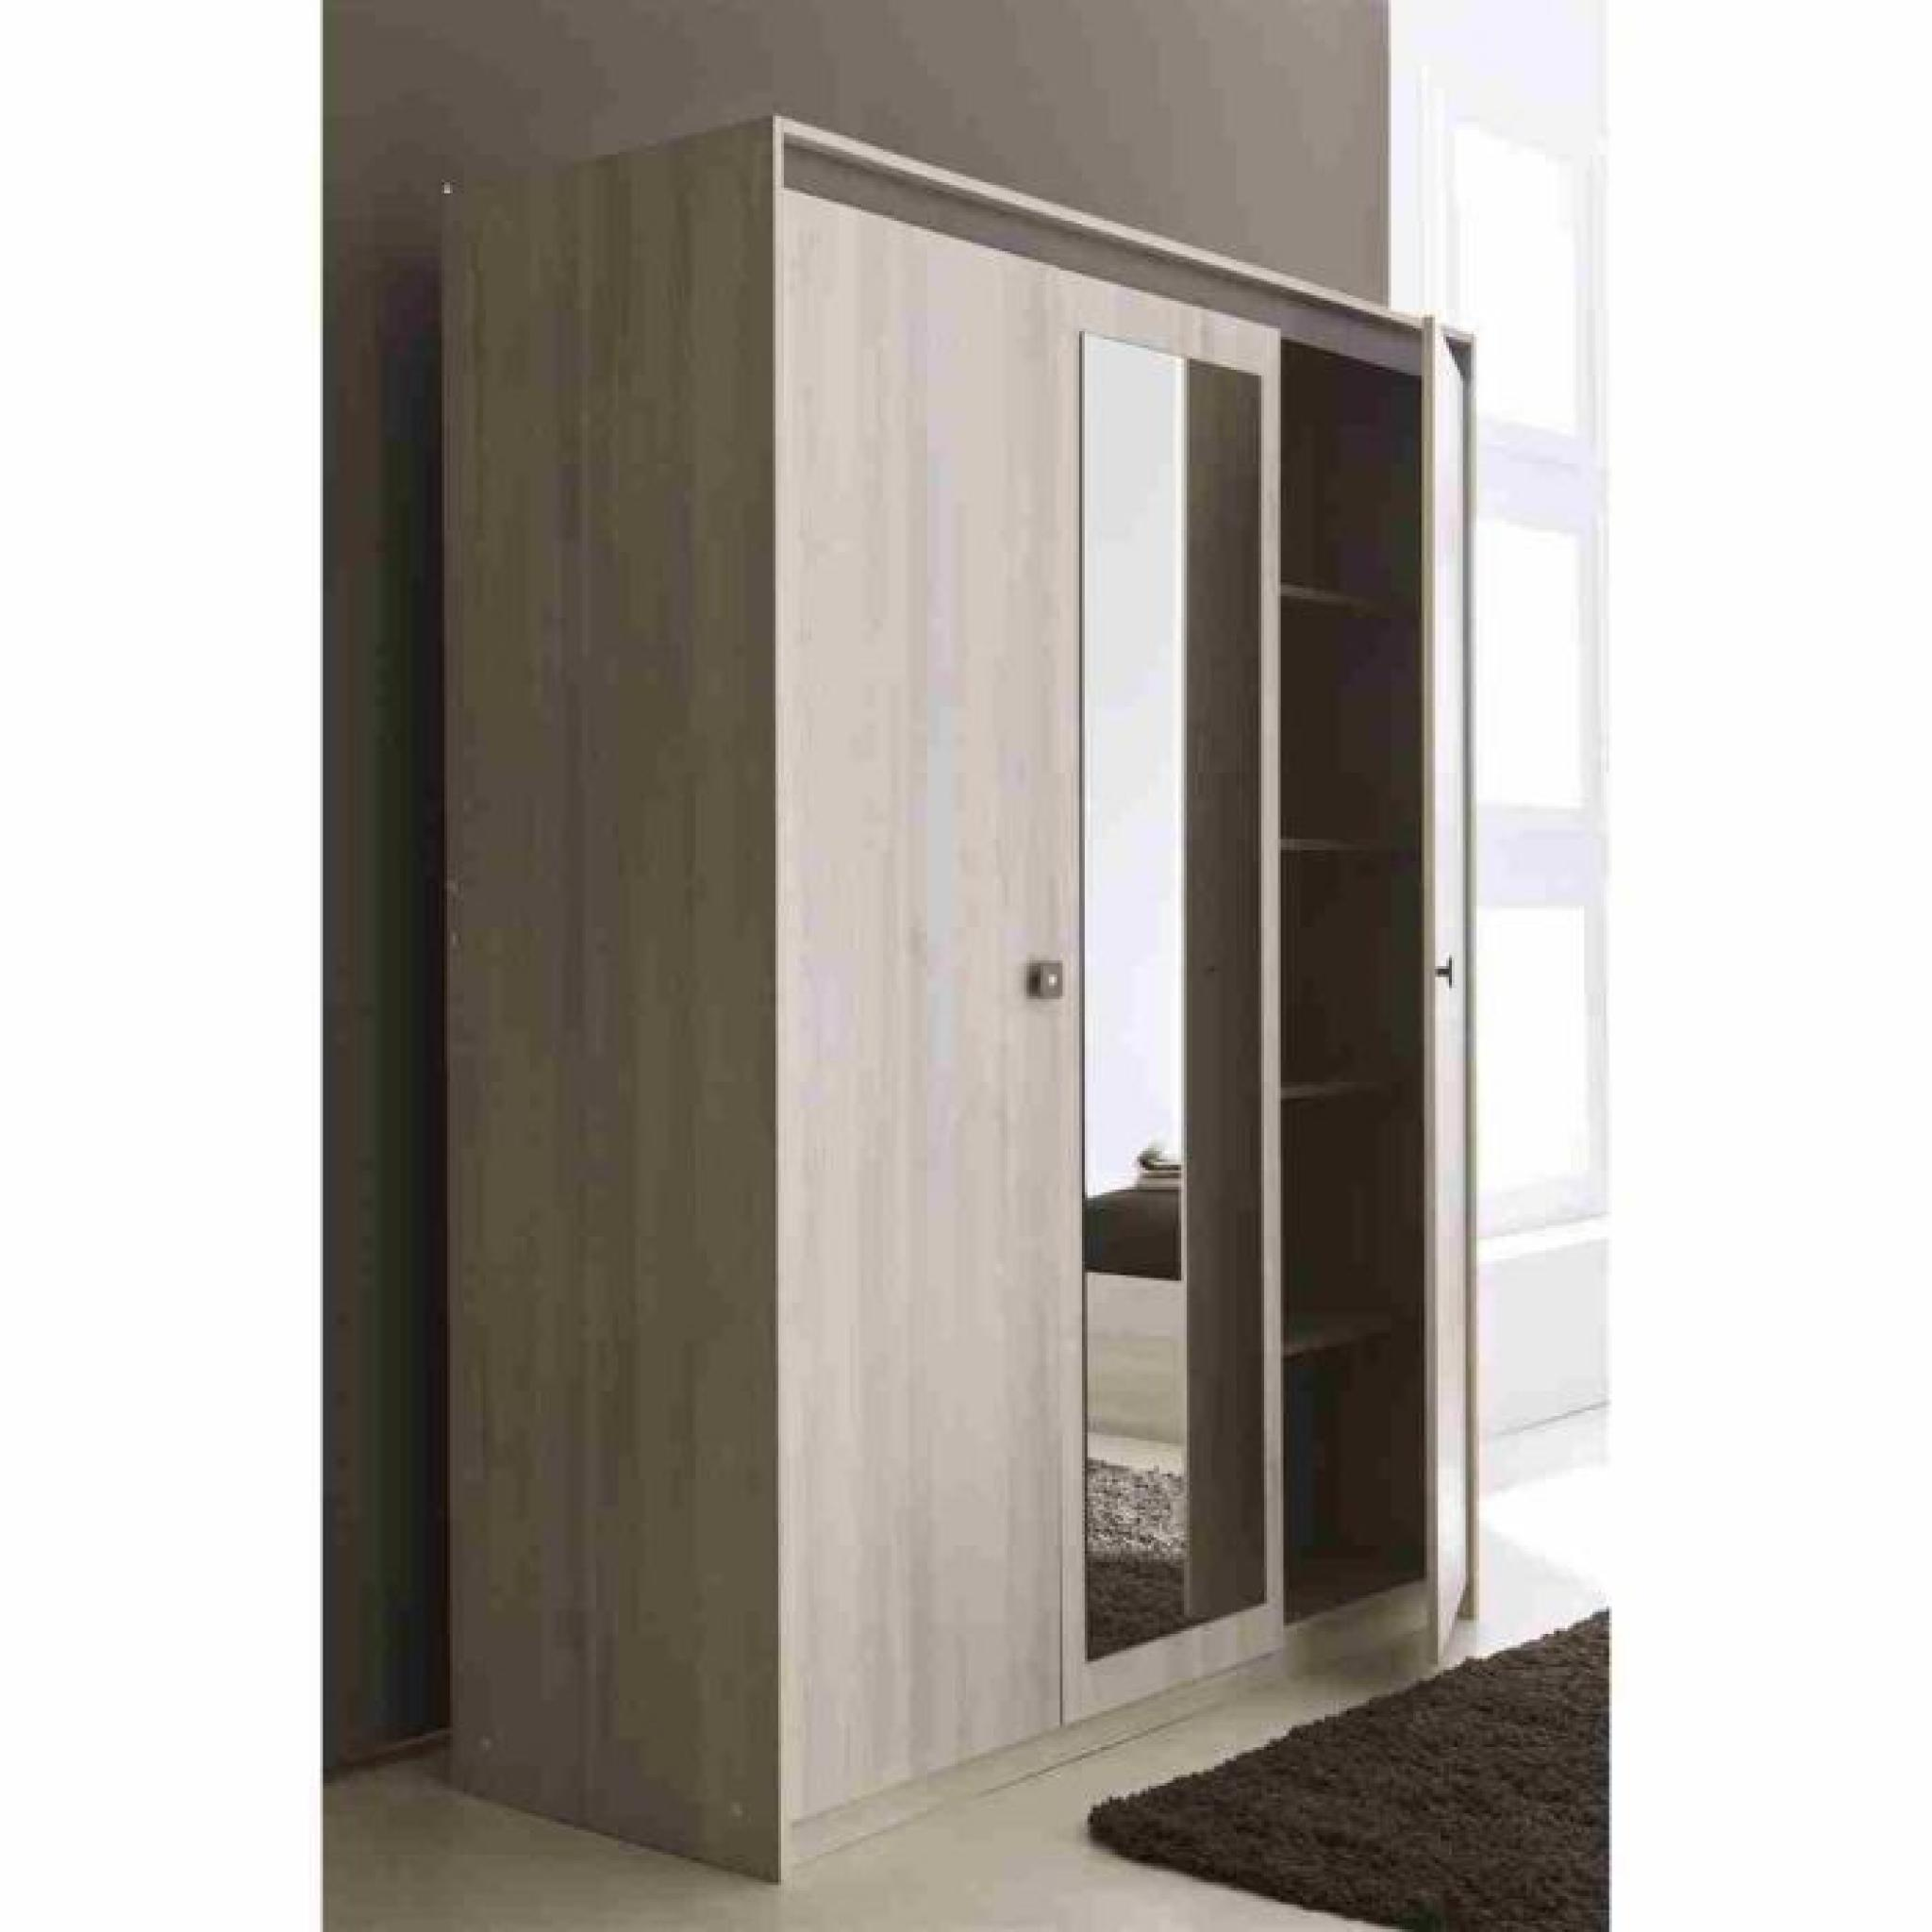 francesca armoire 3 portes miroir achat vente armoire. Black Bedroom Furniture Sets. Home Design Ideas